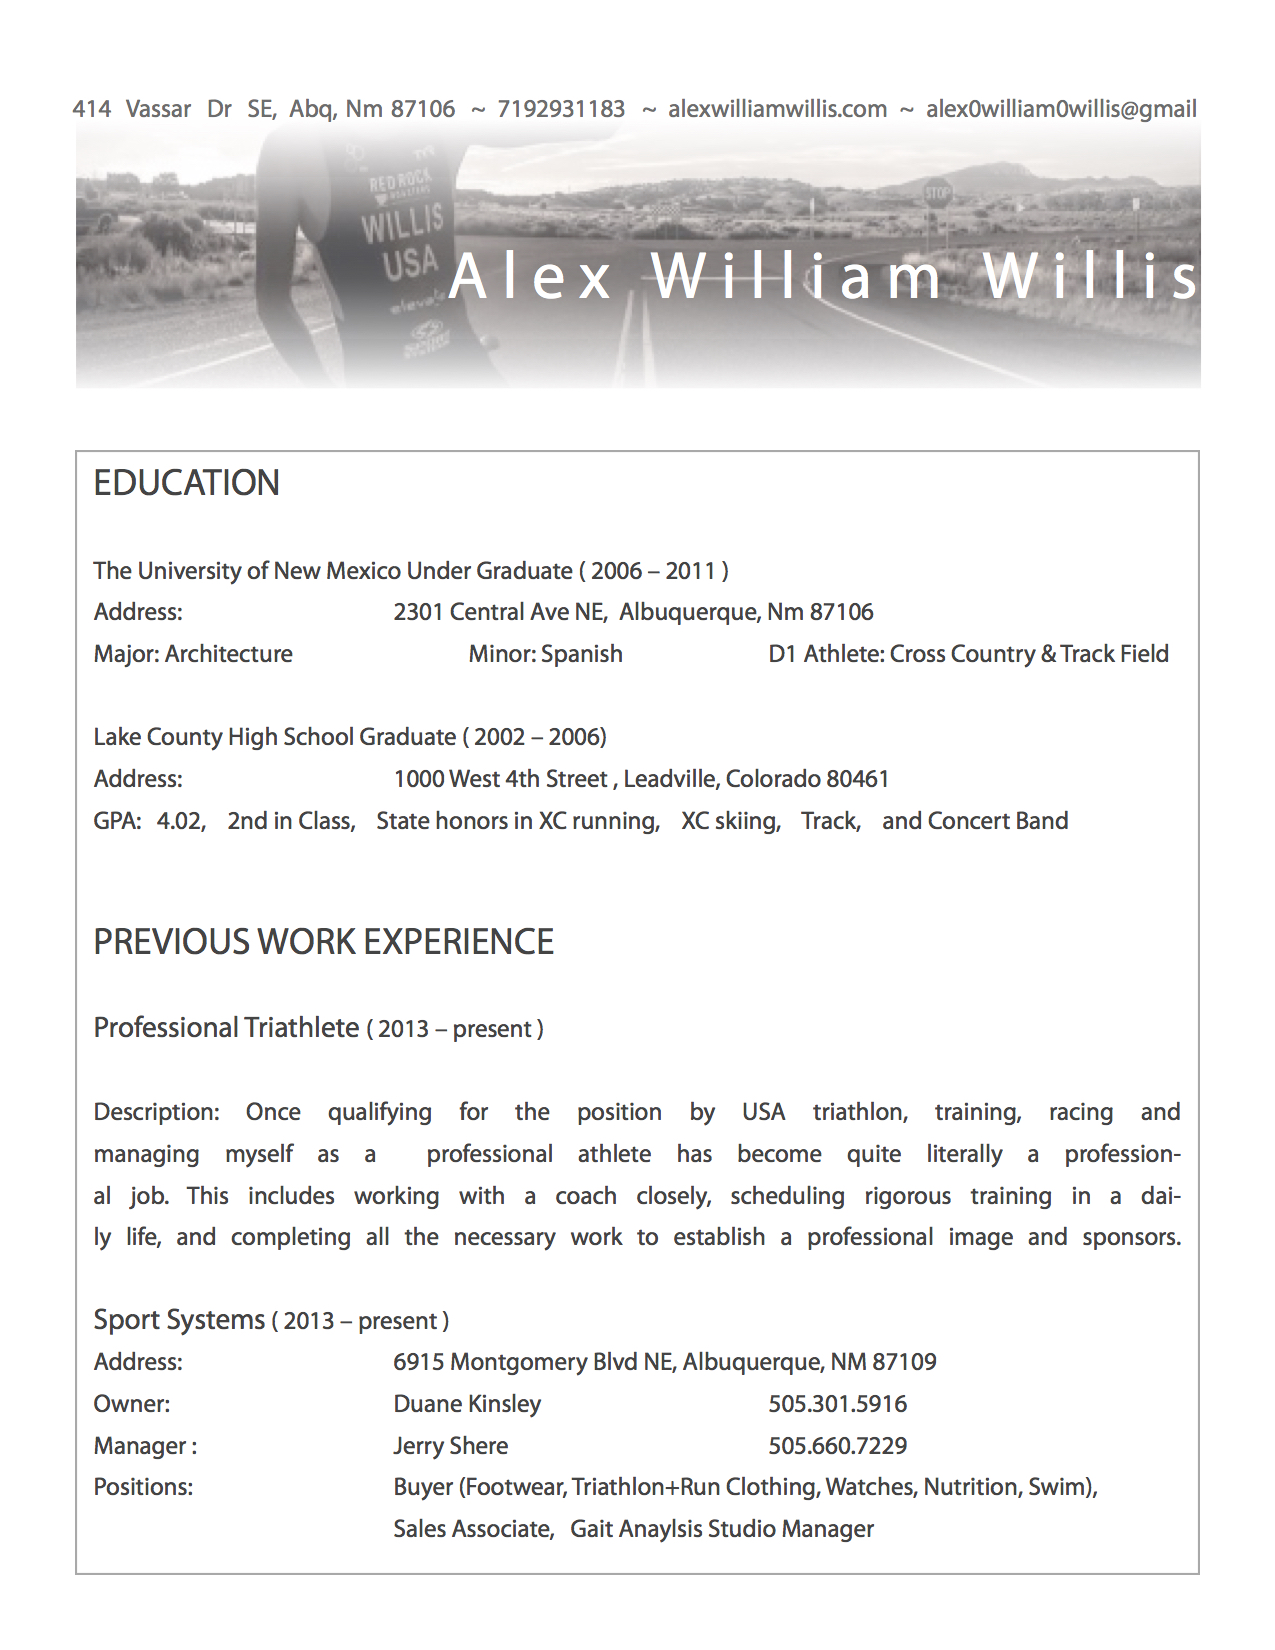 Resume template professional athlete